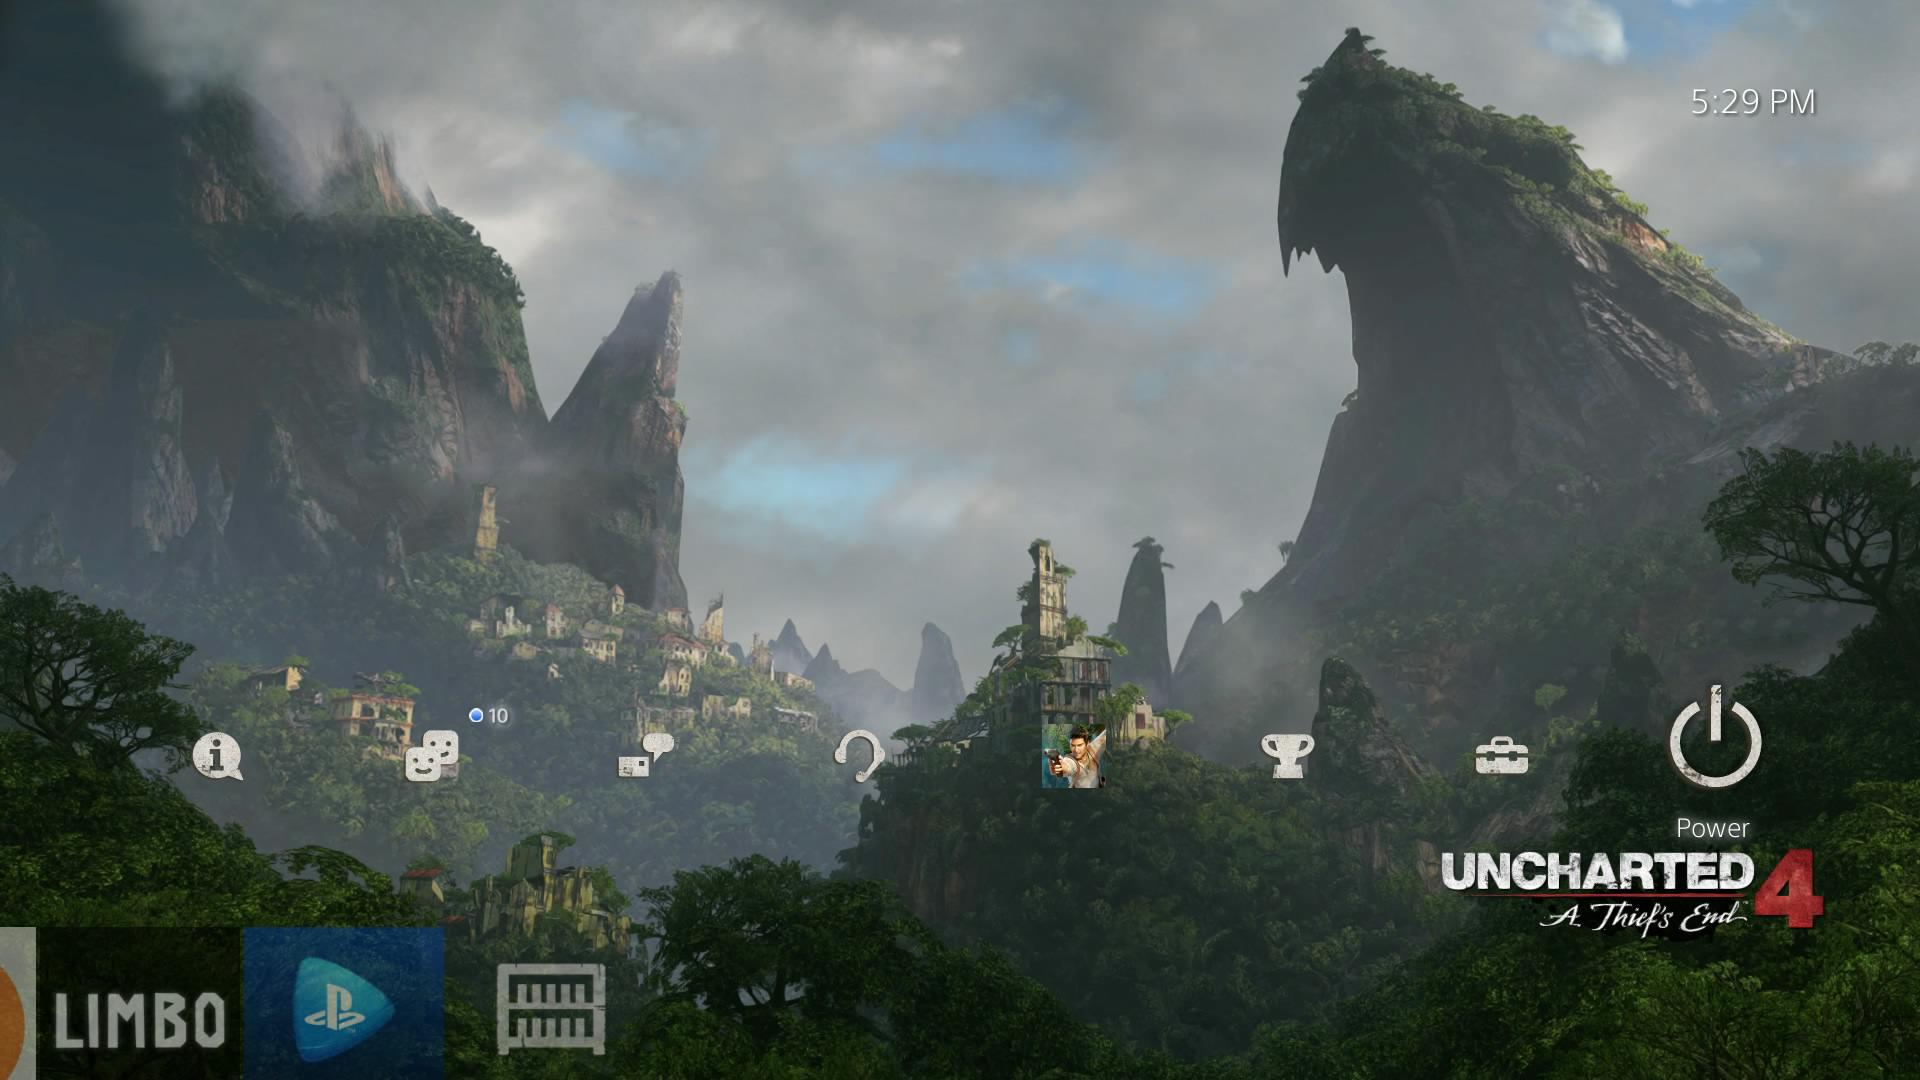 First Screenshot And Video Preview Of Uncharted 4 A Thiefs End Theme Leaked Looks Absolutely Fantastic